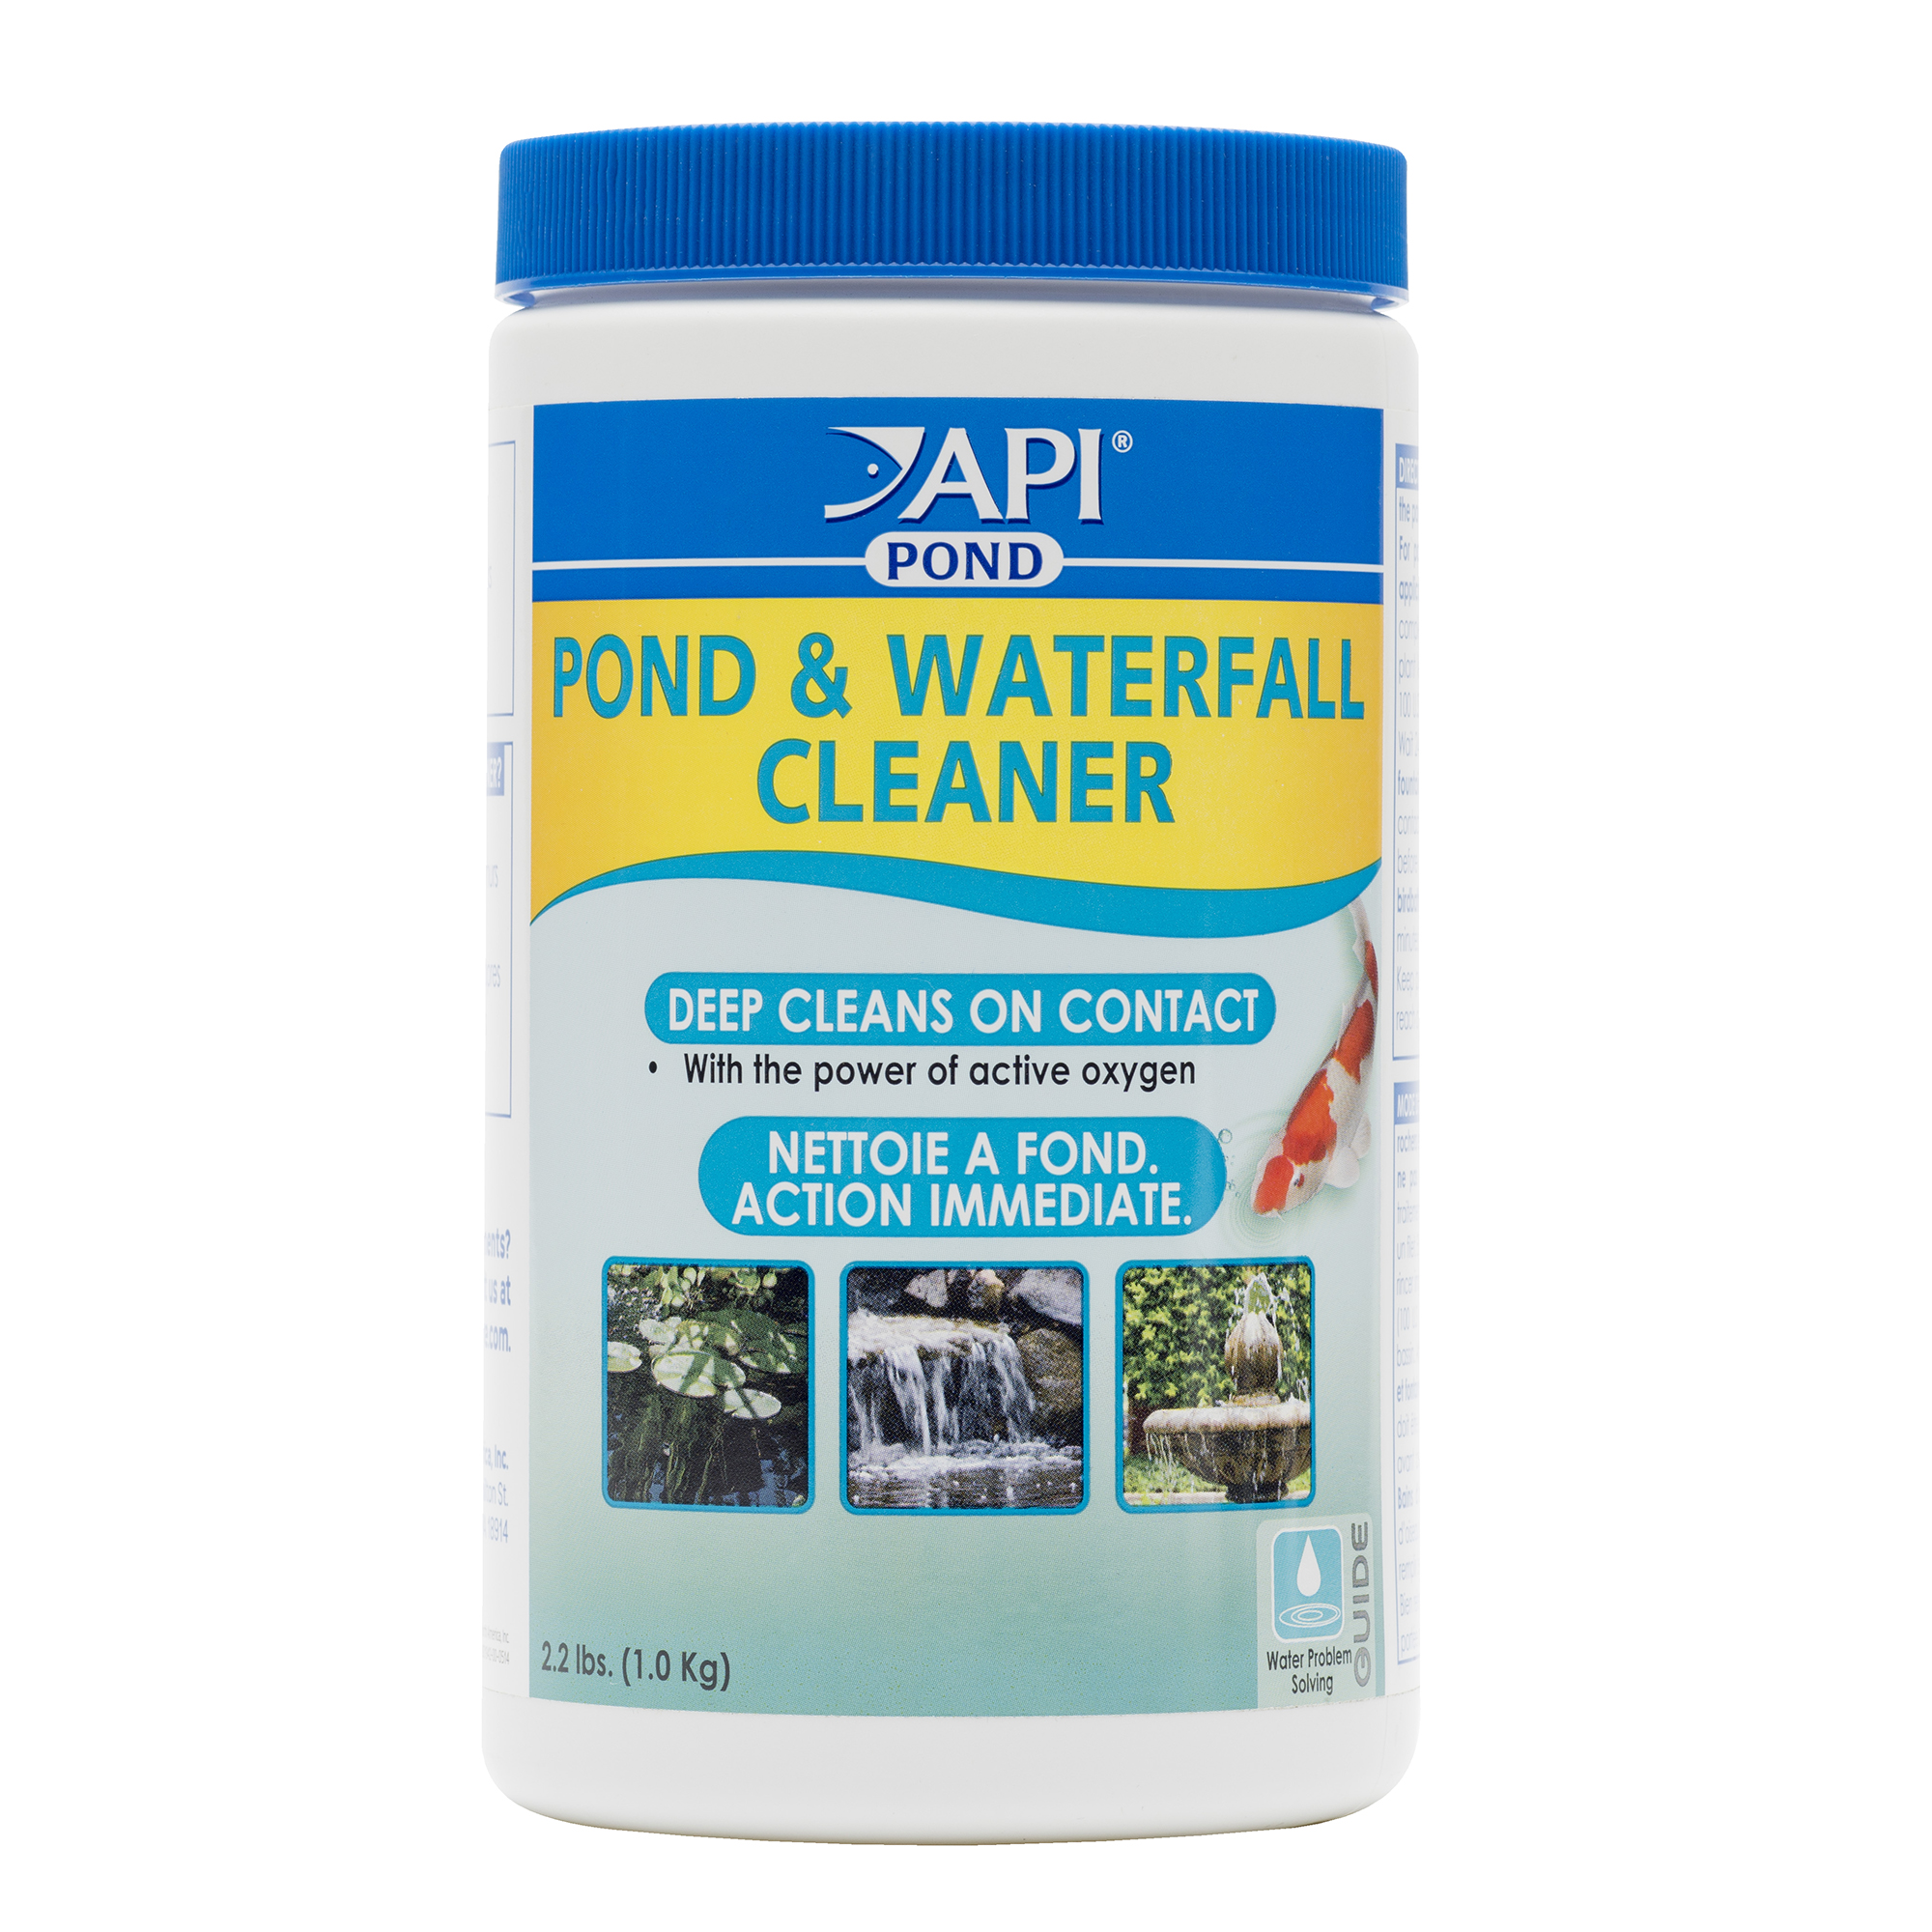 POND & WATERFALL CLEANER